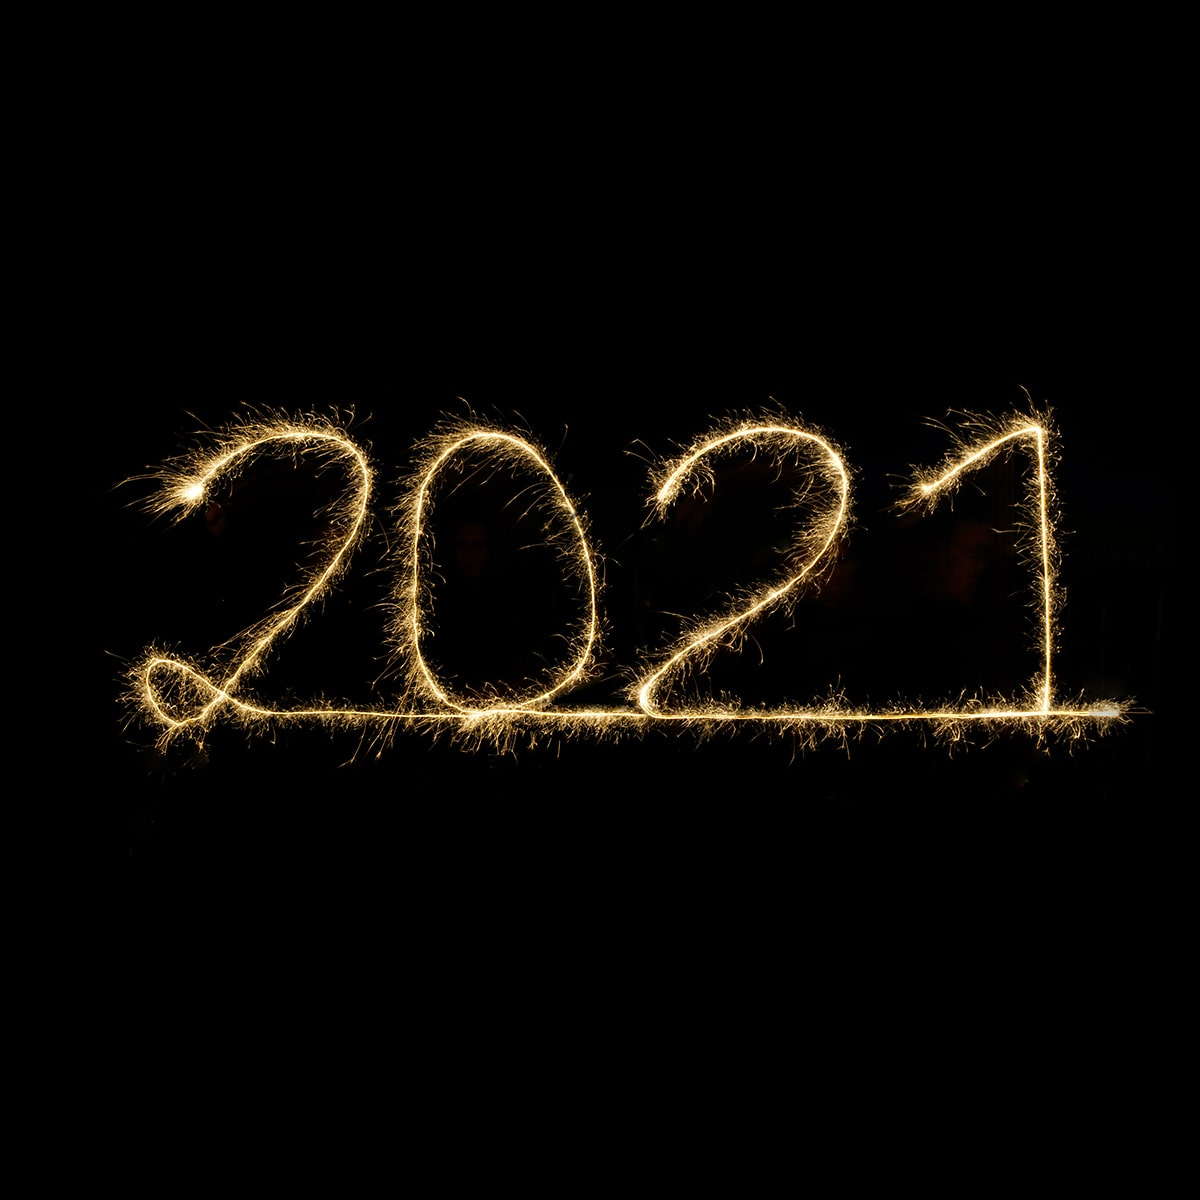 """Image of a Person Writing """"2021"""" in the Air"""